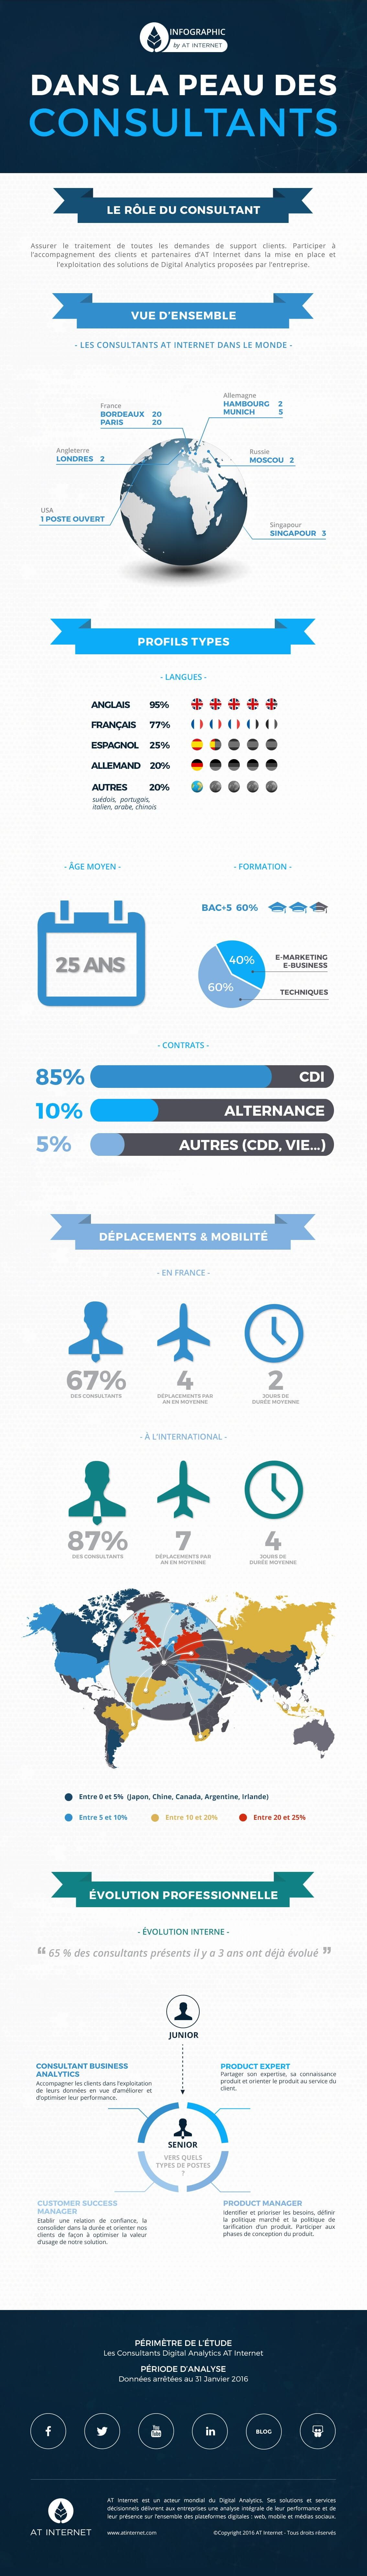 Infographie-Consultants1